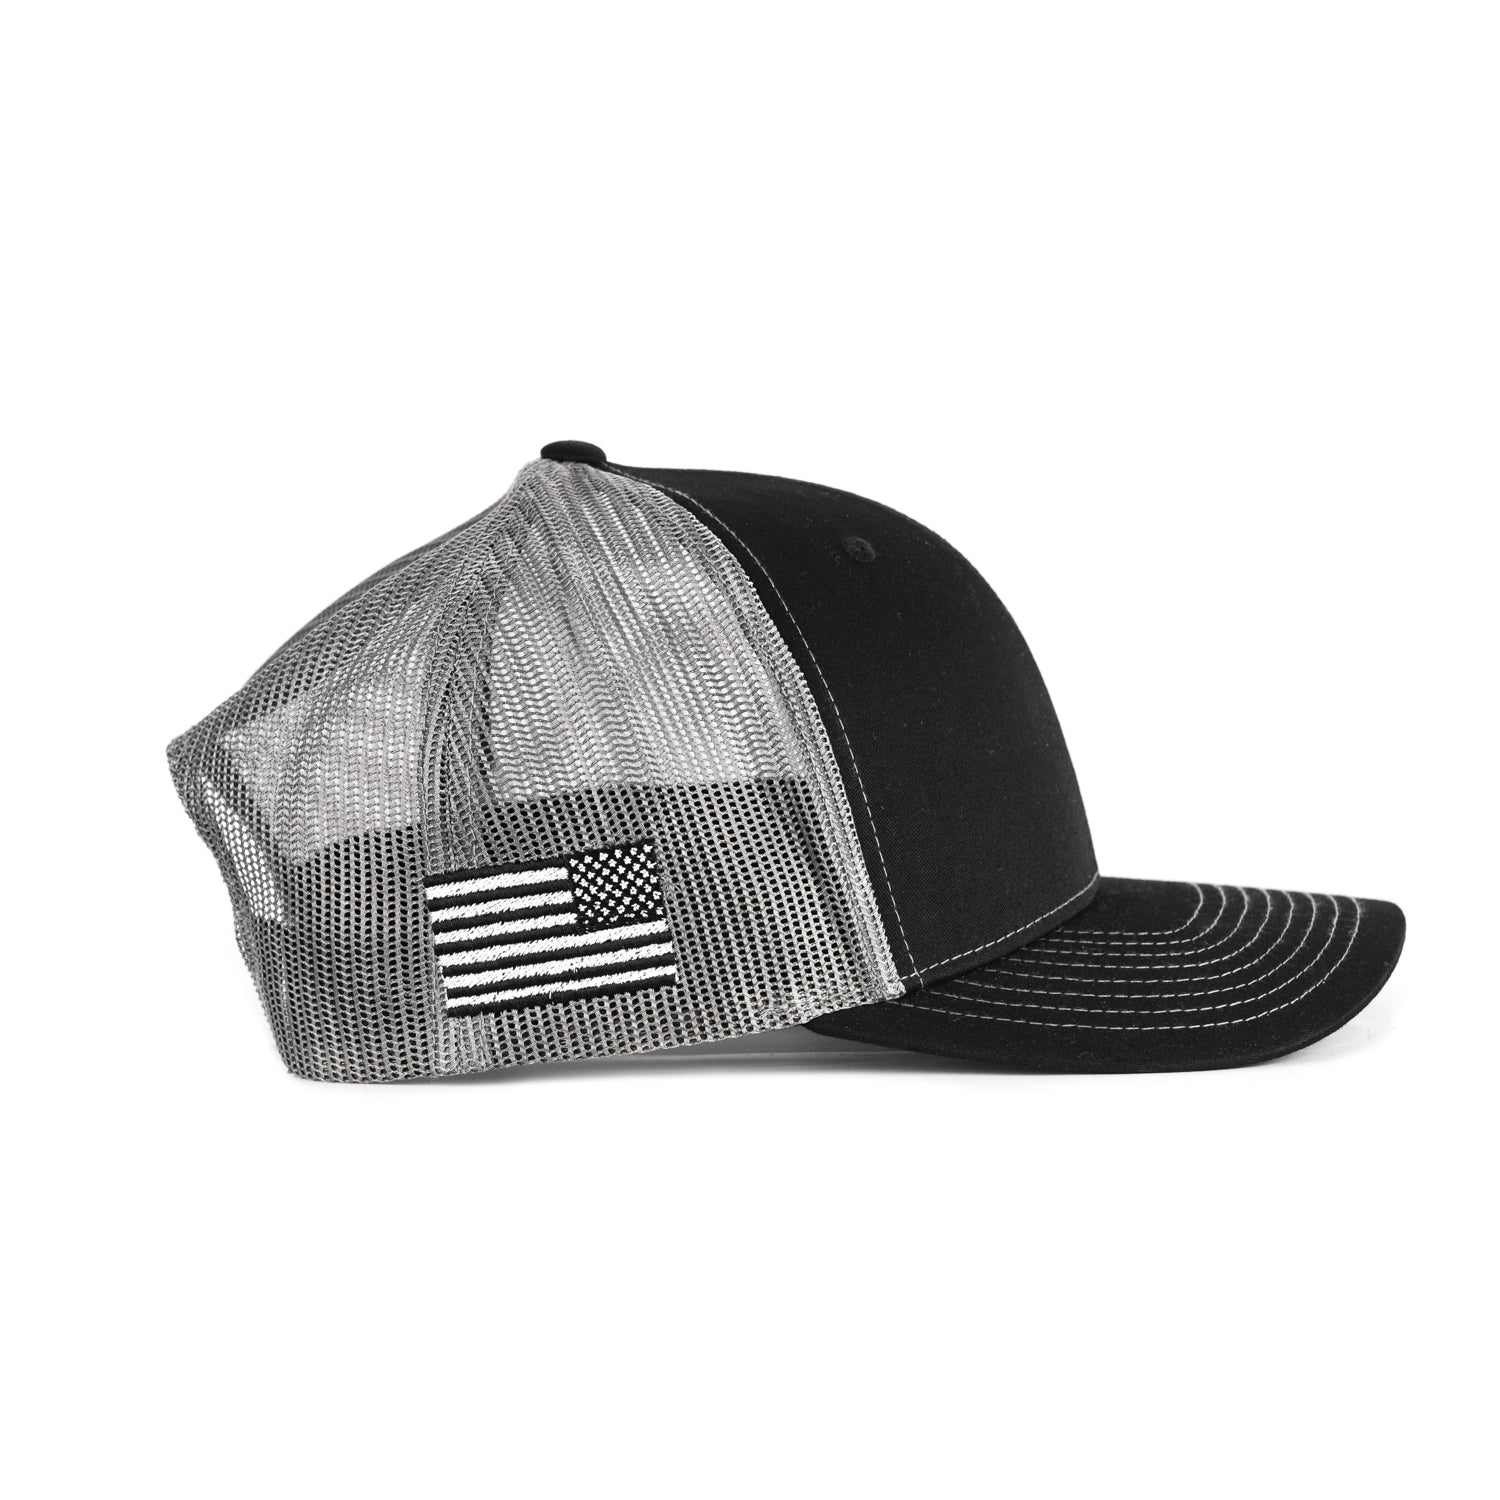 MTNTOUGH HAT - Black/Gray